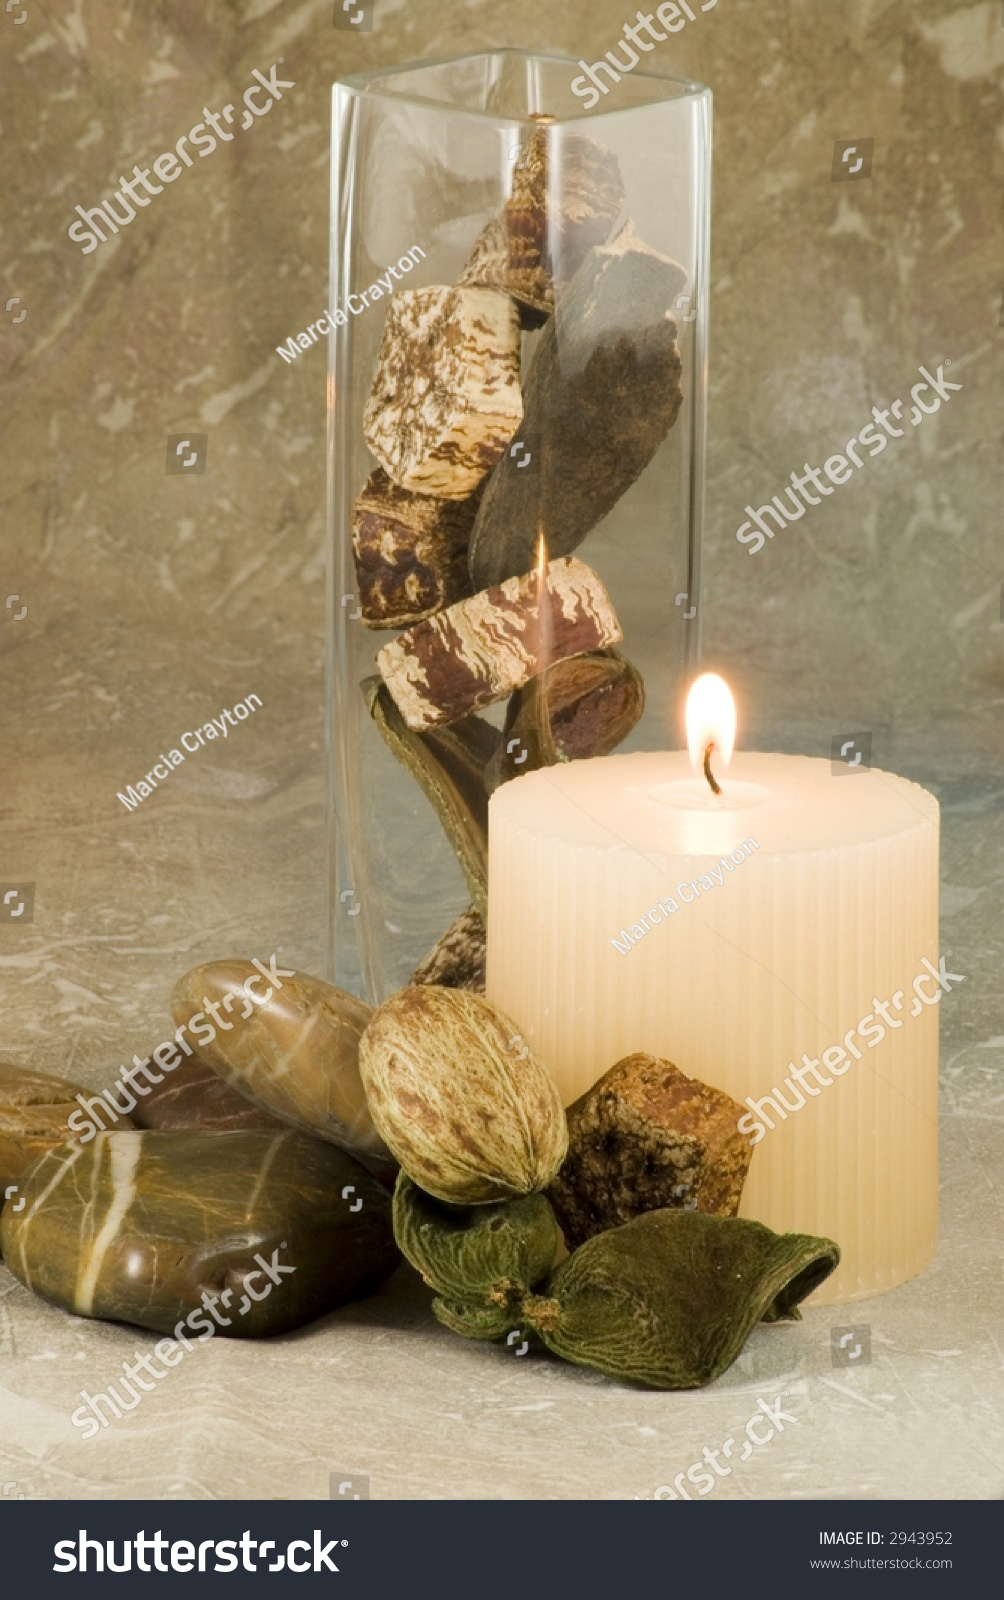 Home decor collection candle vase stones stock photo 2943952 shutterstock - Home decor home business collection ...